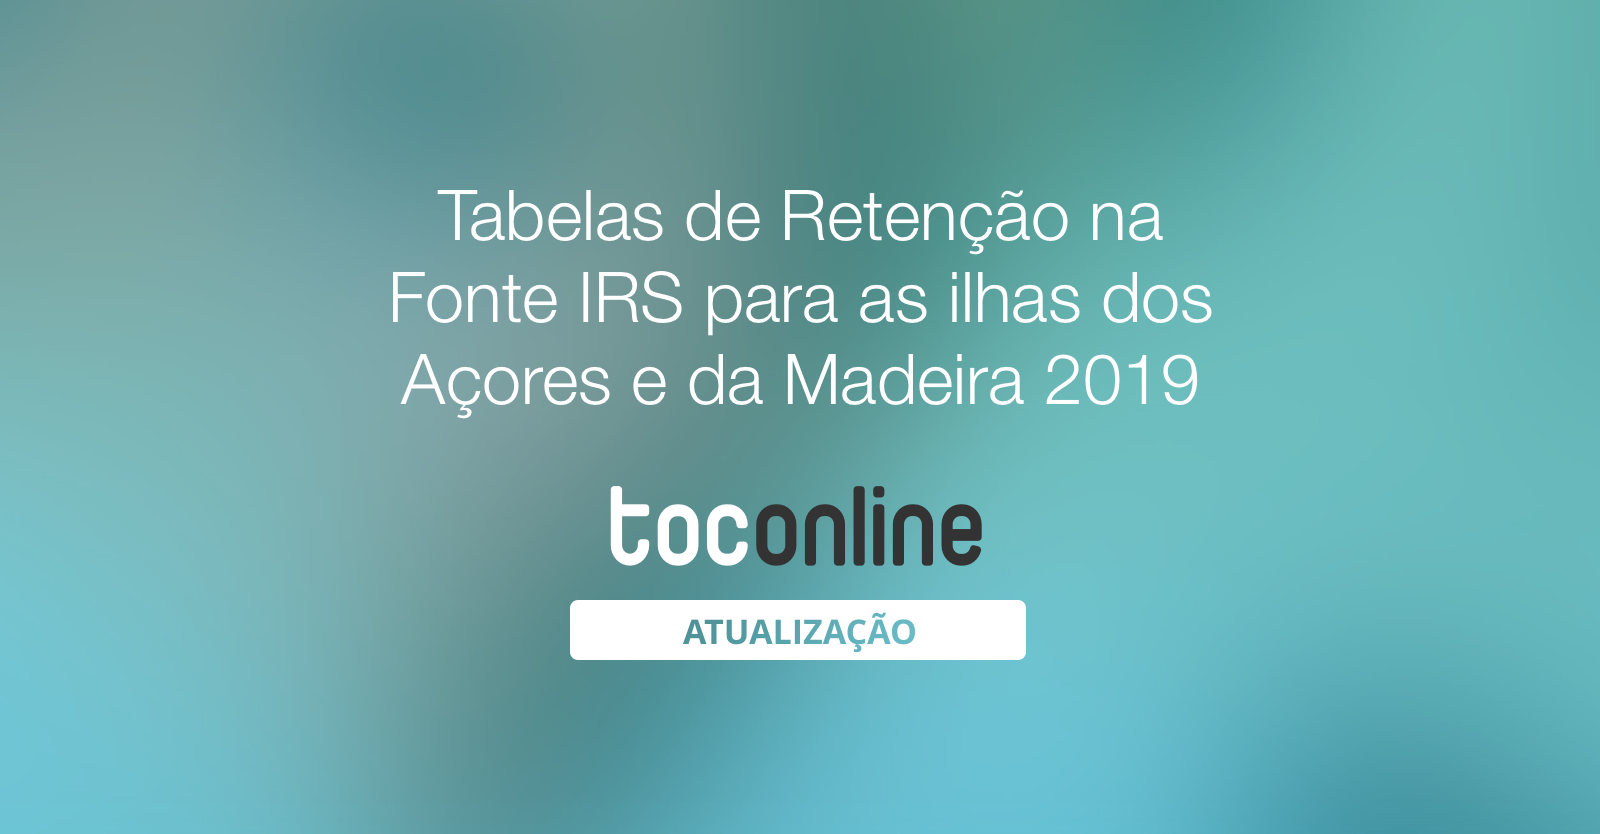 Post tabelas retencao irs ilhas 2019